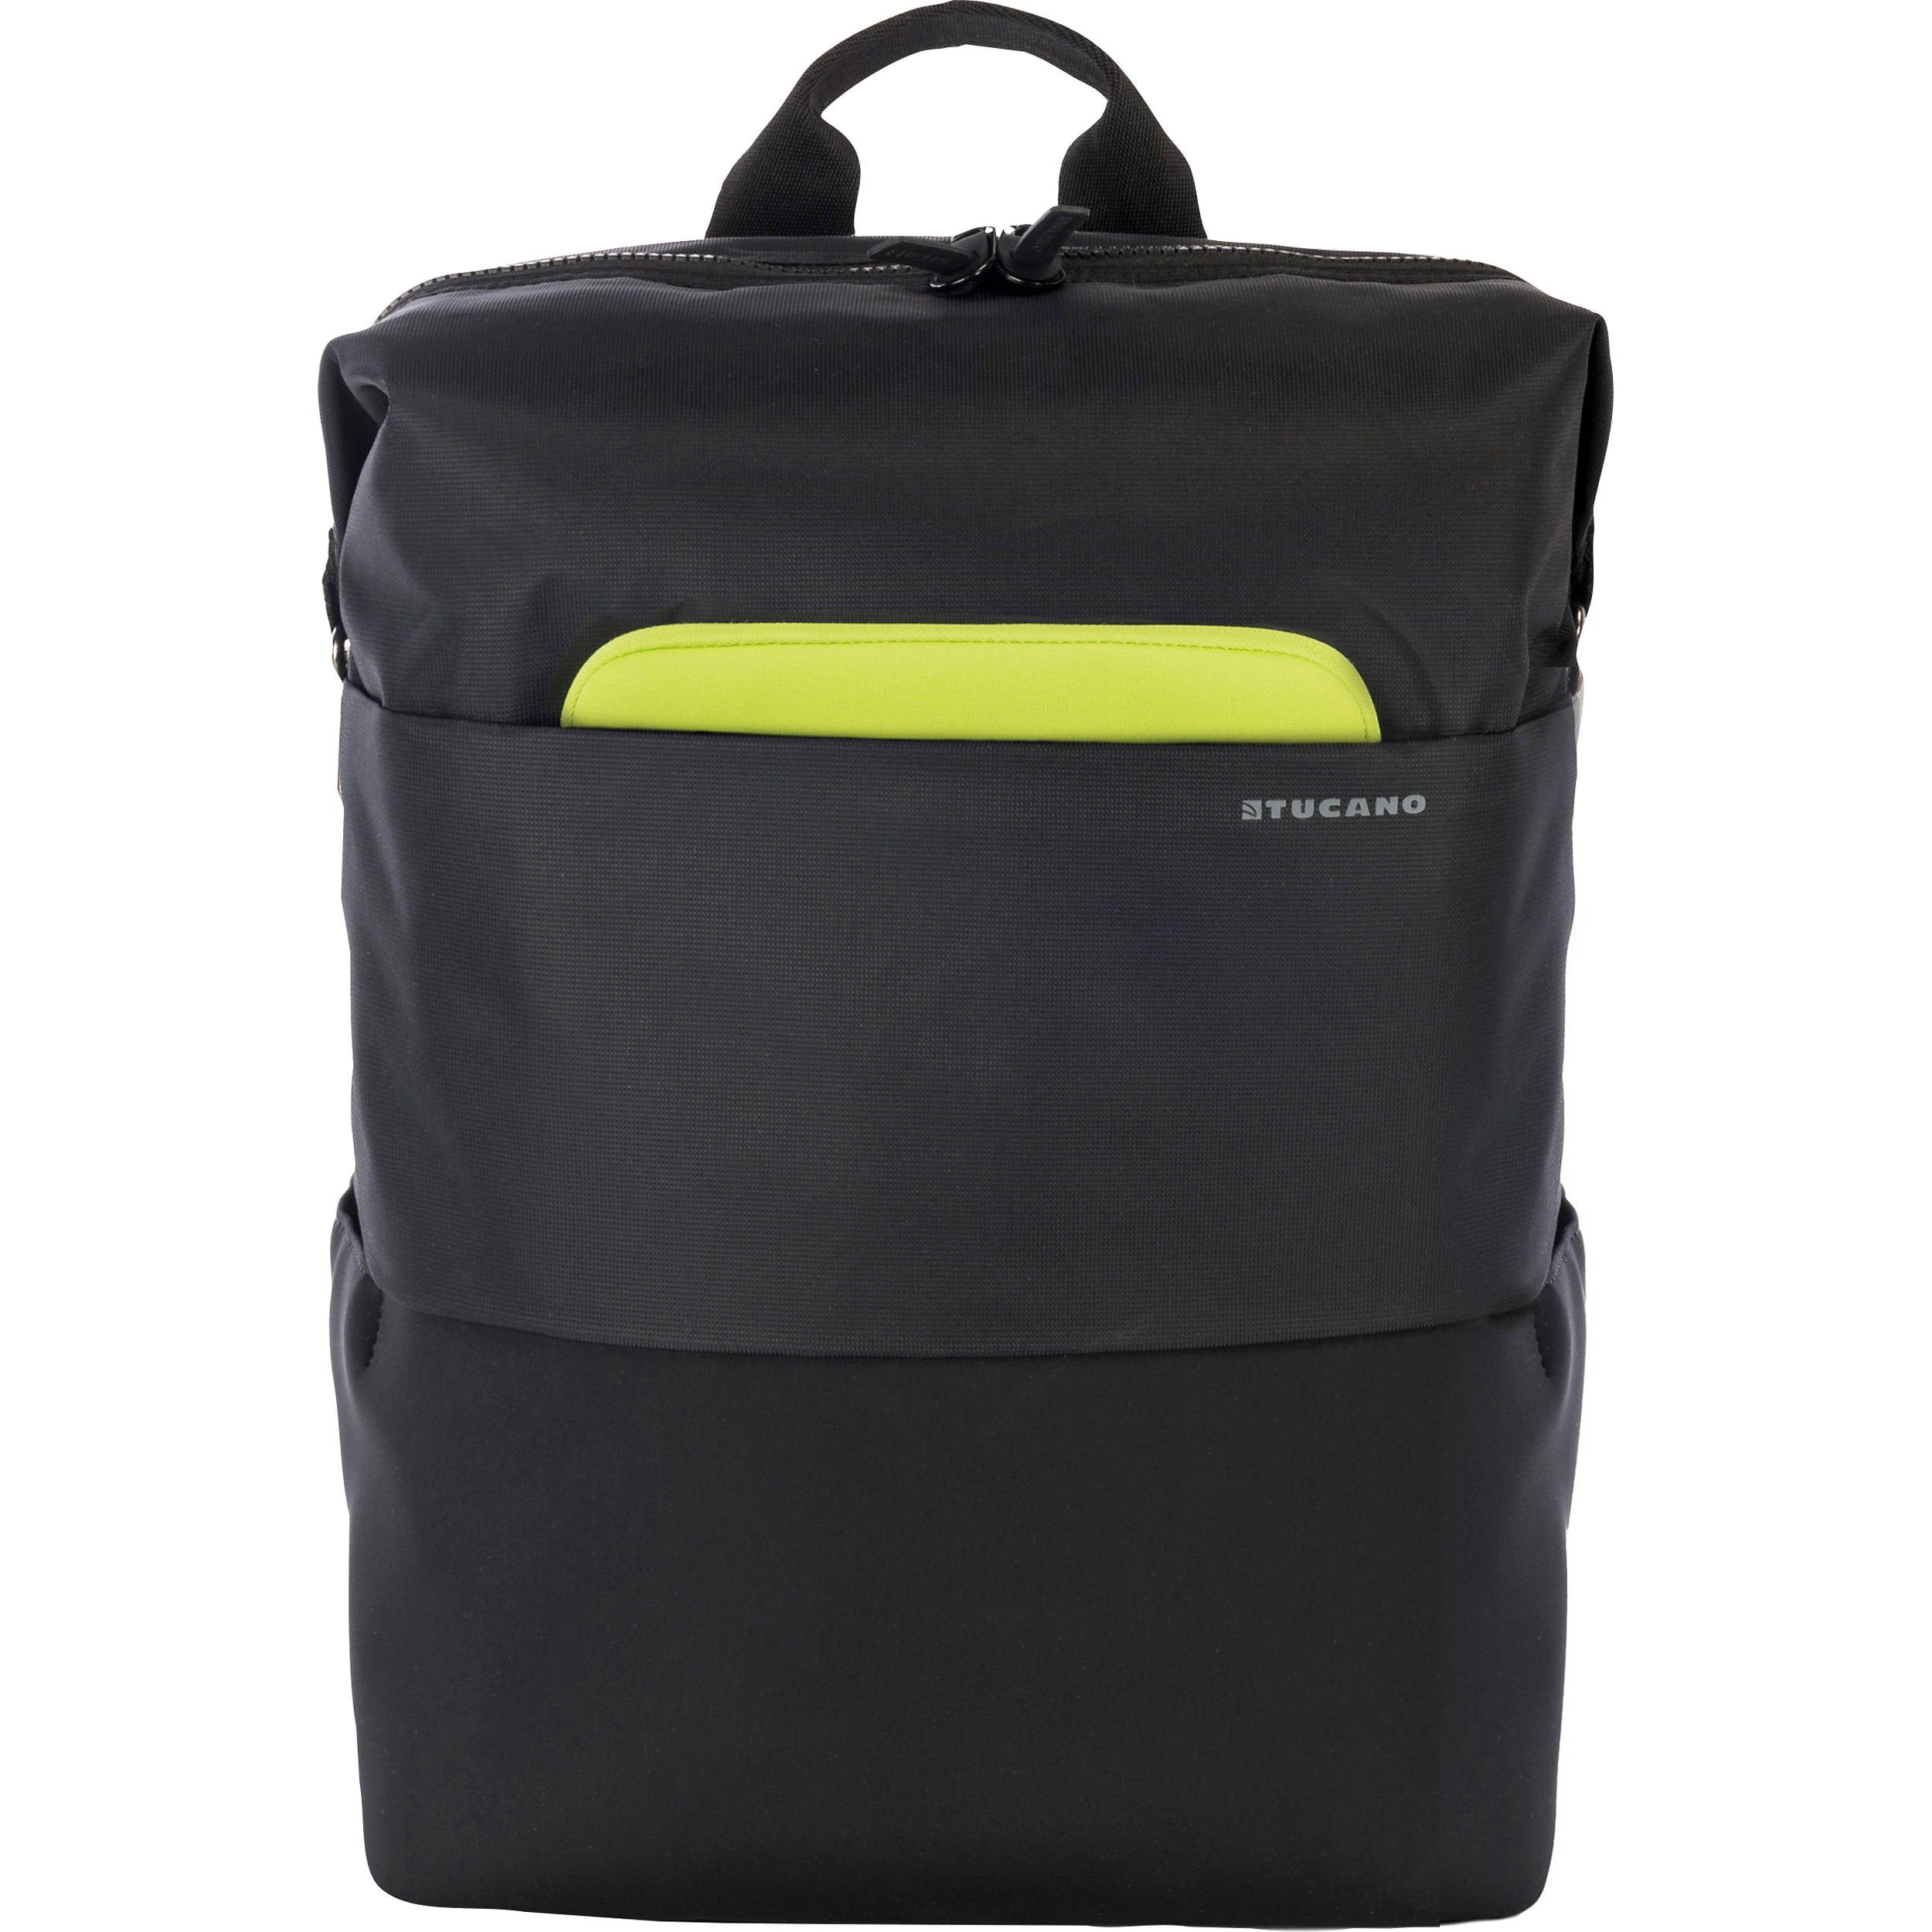 fbc9cde33a79 Laptop Backpack For Macbook Pro 15- Fenix Toulouse Handball